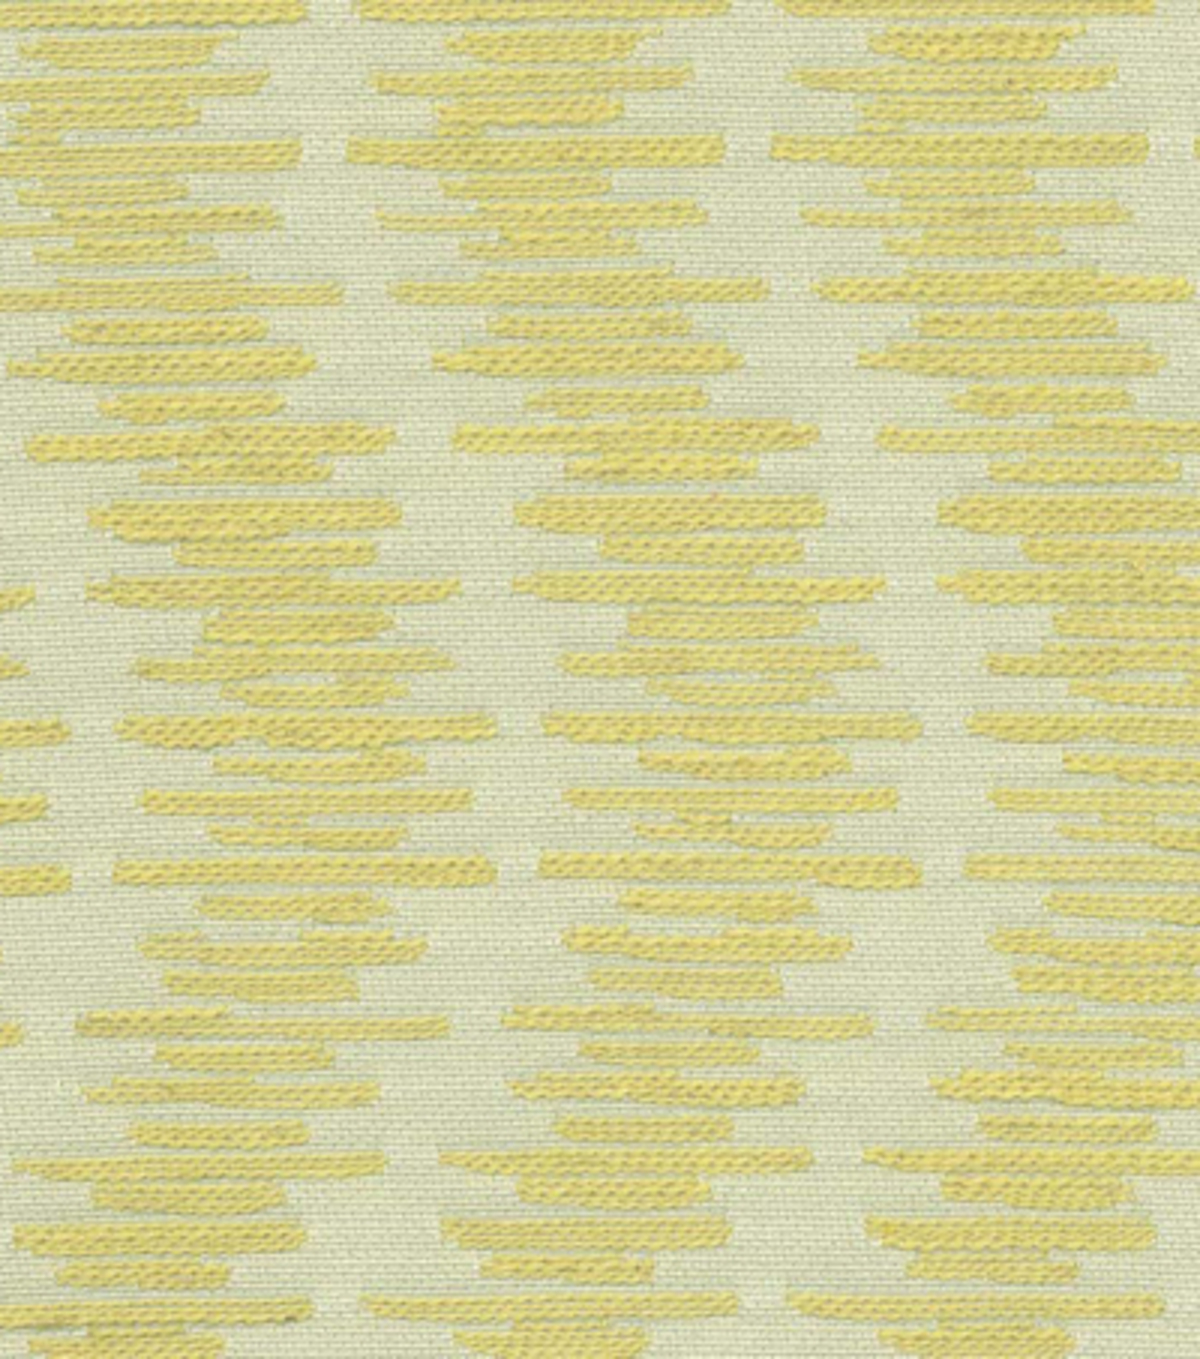 Home Decor 8\u0022x8\u0022 Fabric Swatch-HGTV HOME Wavering Citrine